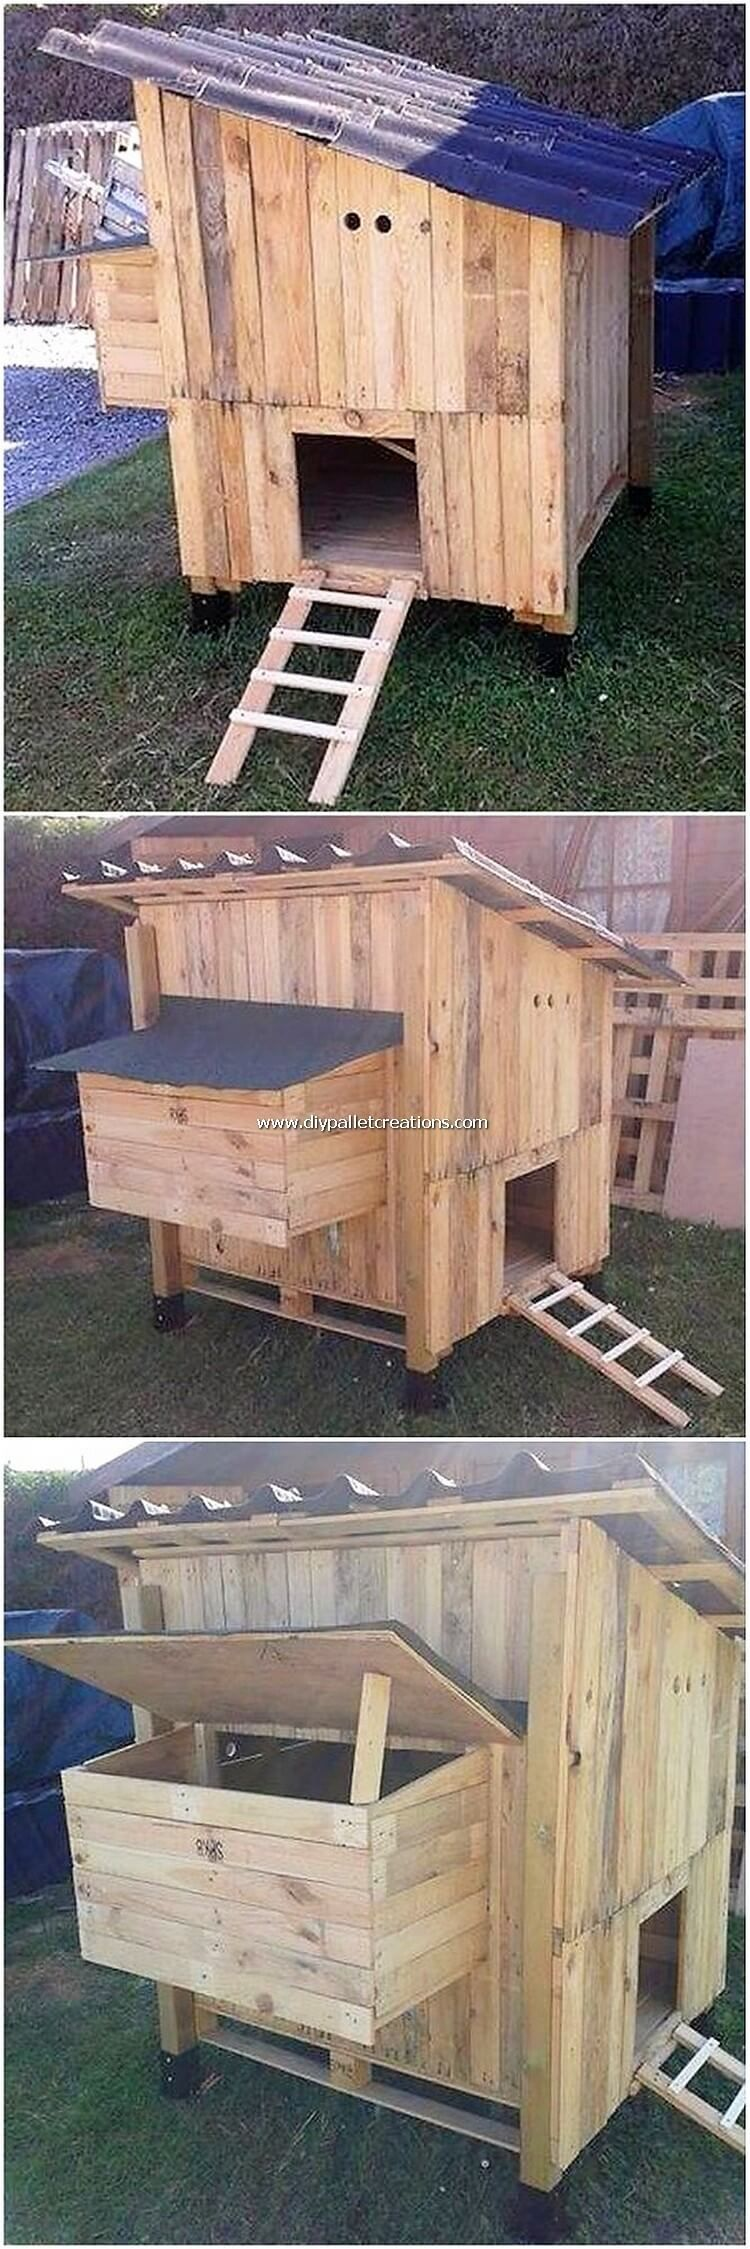 Let's make you offer the interesting wood pallet idea that ...